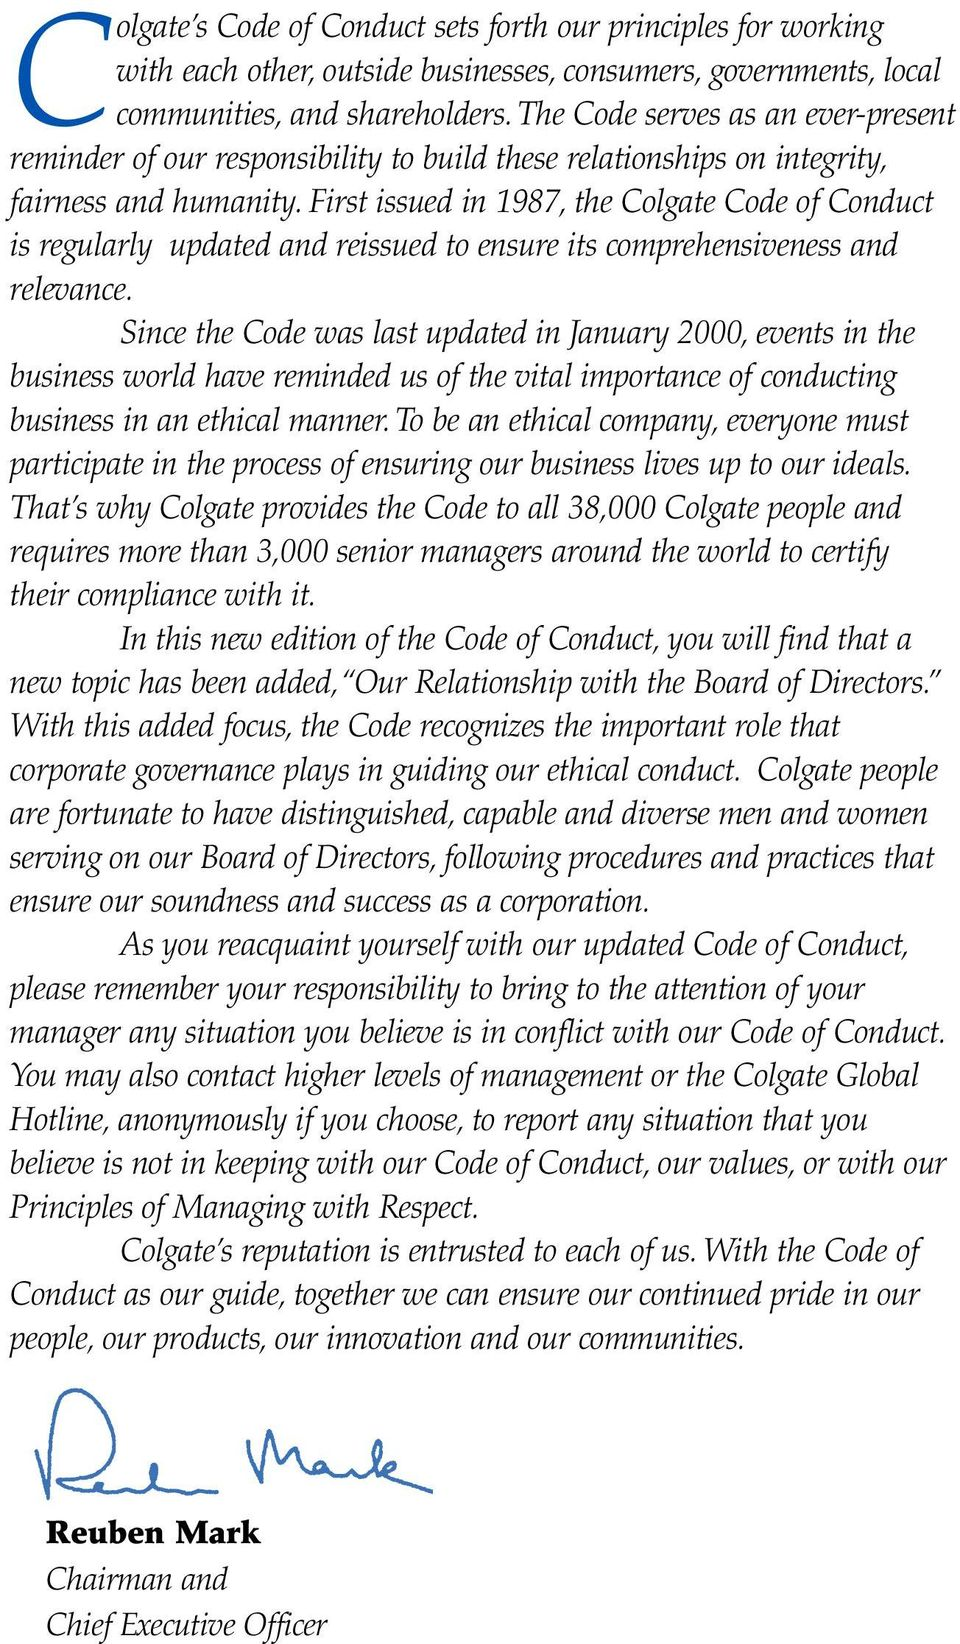 First issued in 1987, the Colgate Code of Conduct is regularly updated and reissued to ensure its comprehensiveness and relevance.